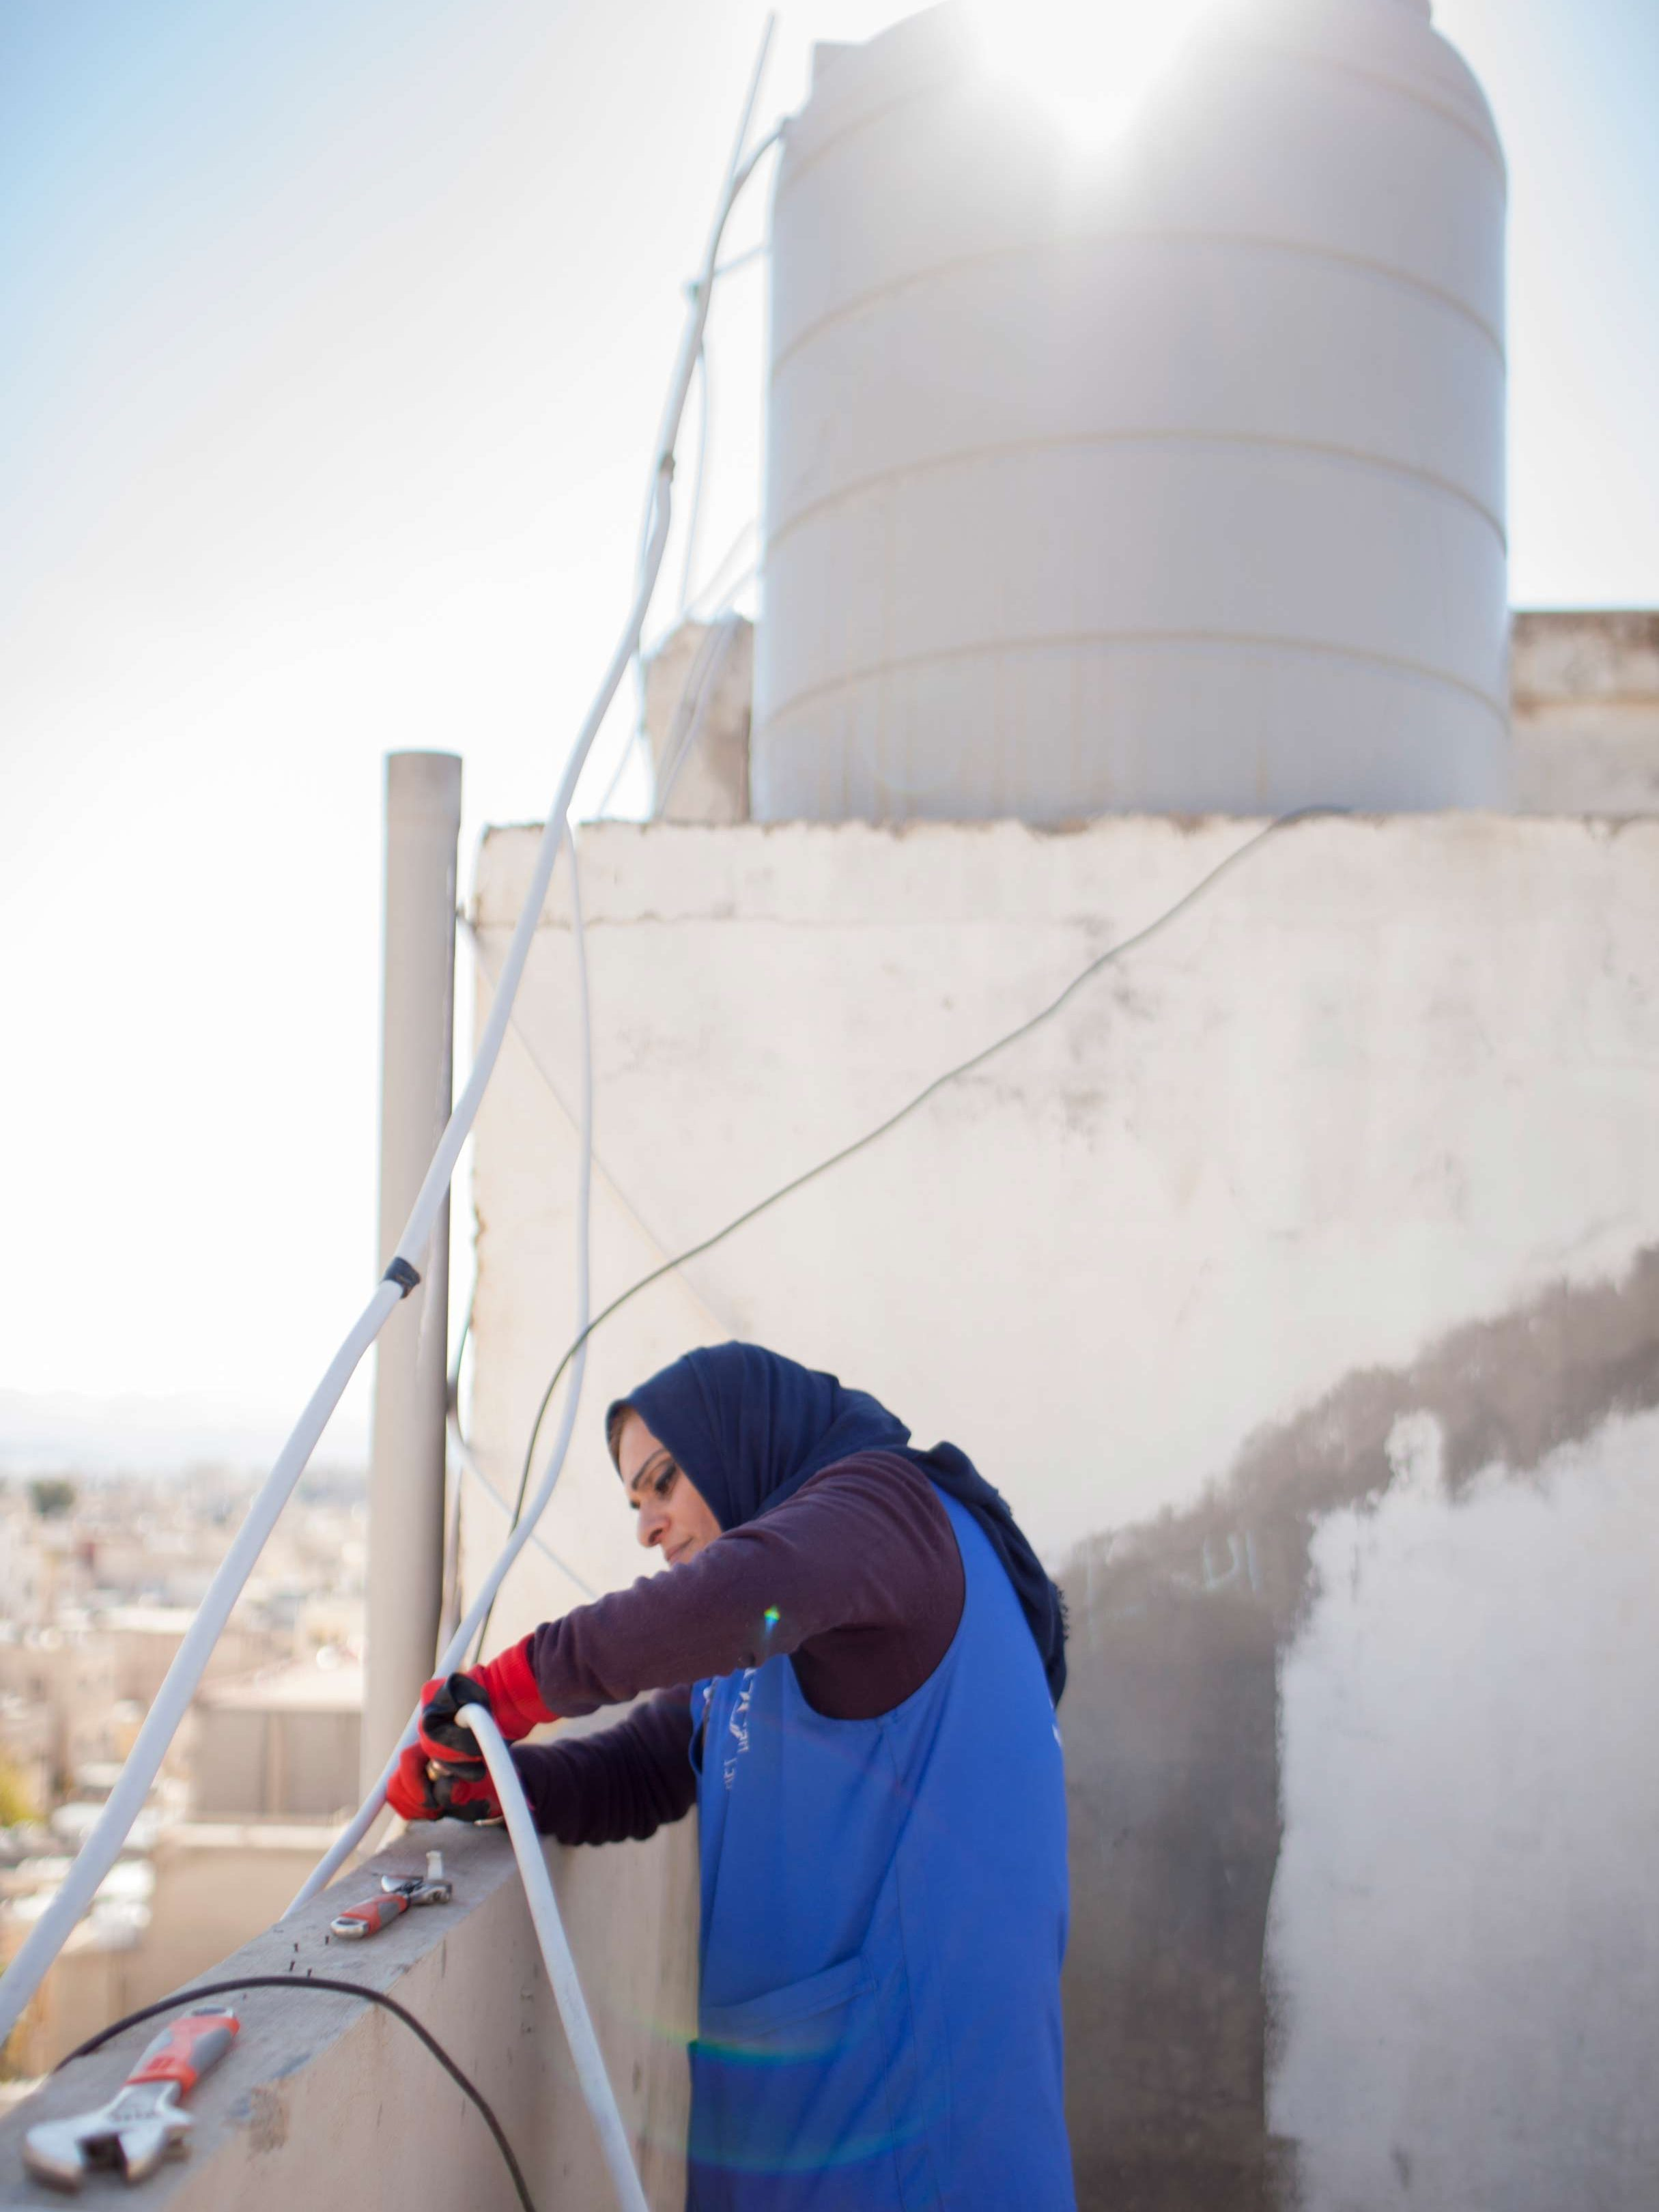 Photo: Ra'eda, pictured fixing a water connection on a roof in Zarqa, Jordan, is one of 30 women who received training to become plumbers through a project that taught women how to effectively manage limited water resources in Zarqa, Jordan as part of MCC's Jordan Compact.